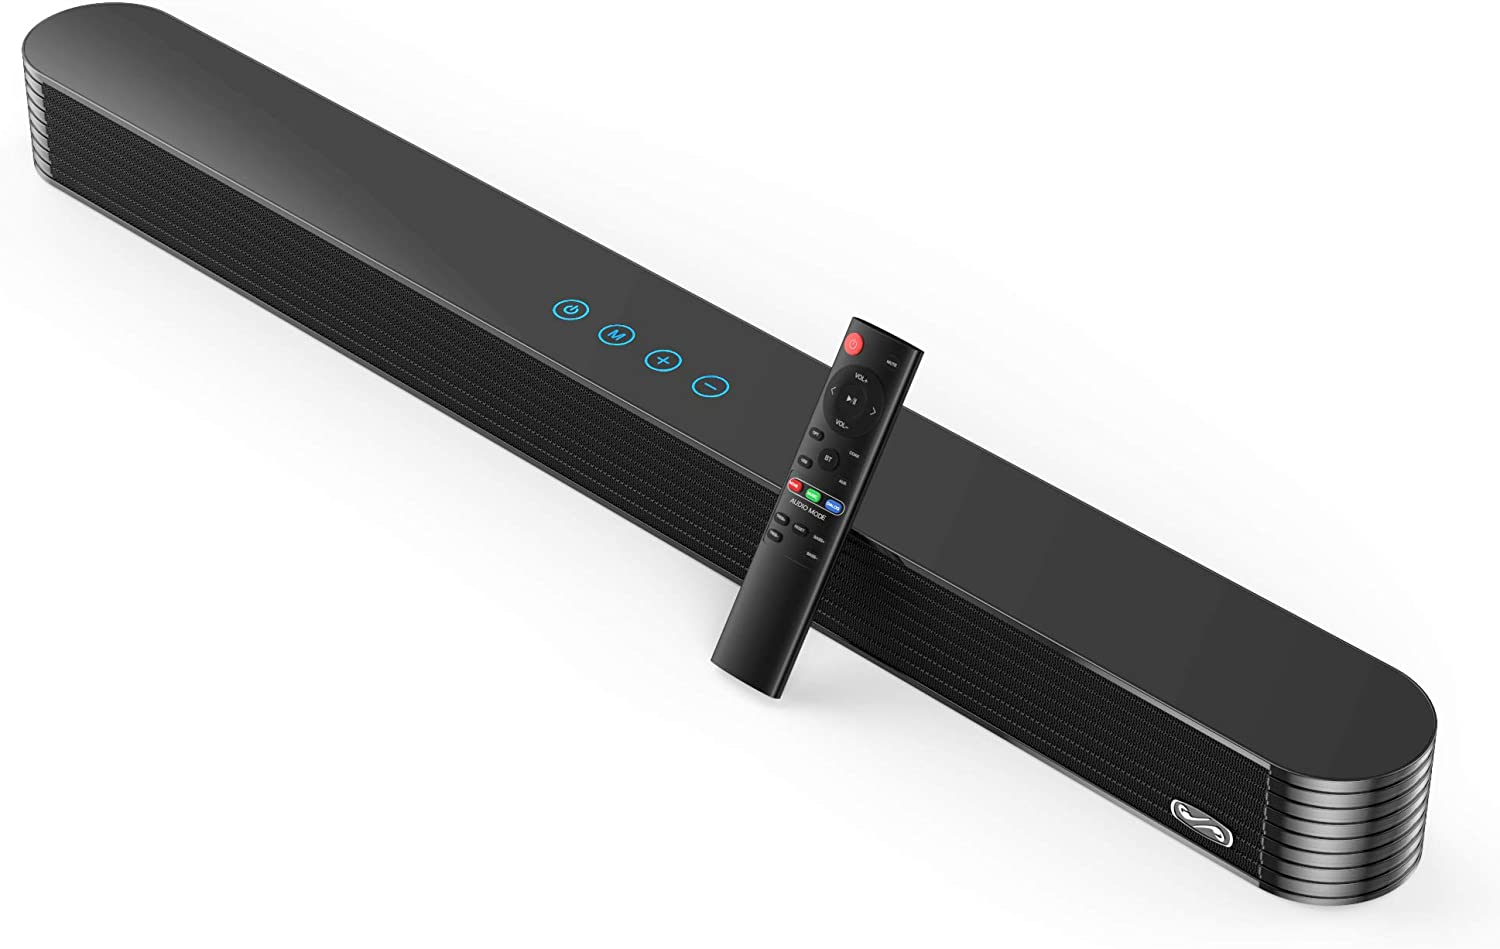 This is an image of a soundbar with a remote control next to it.